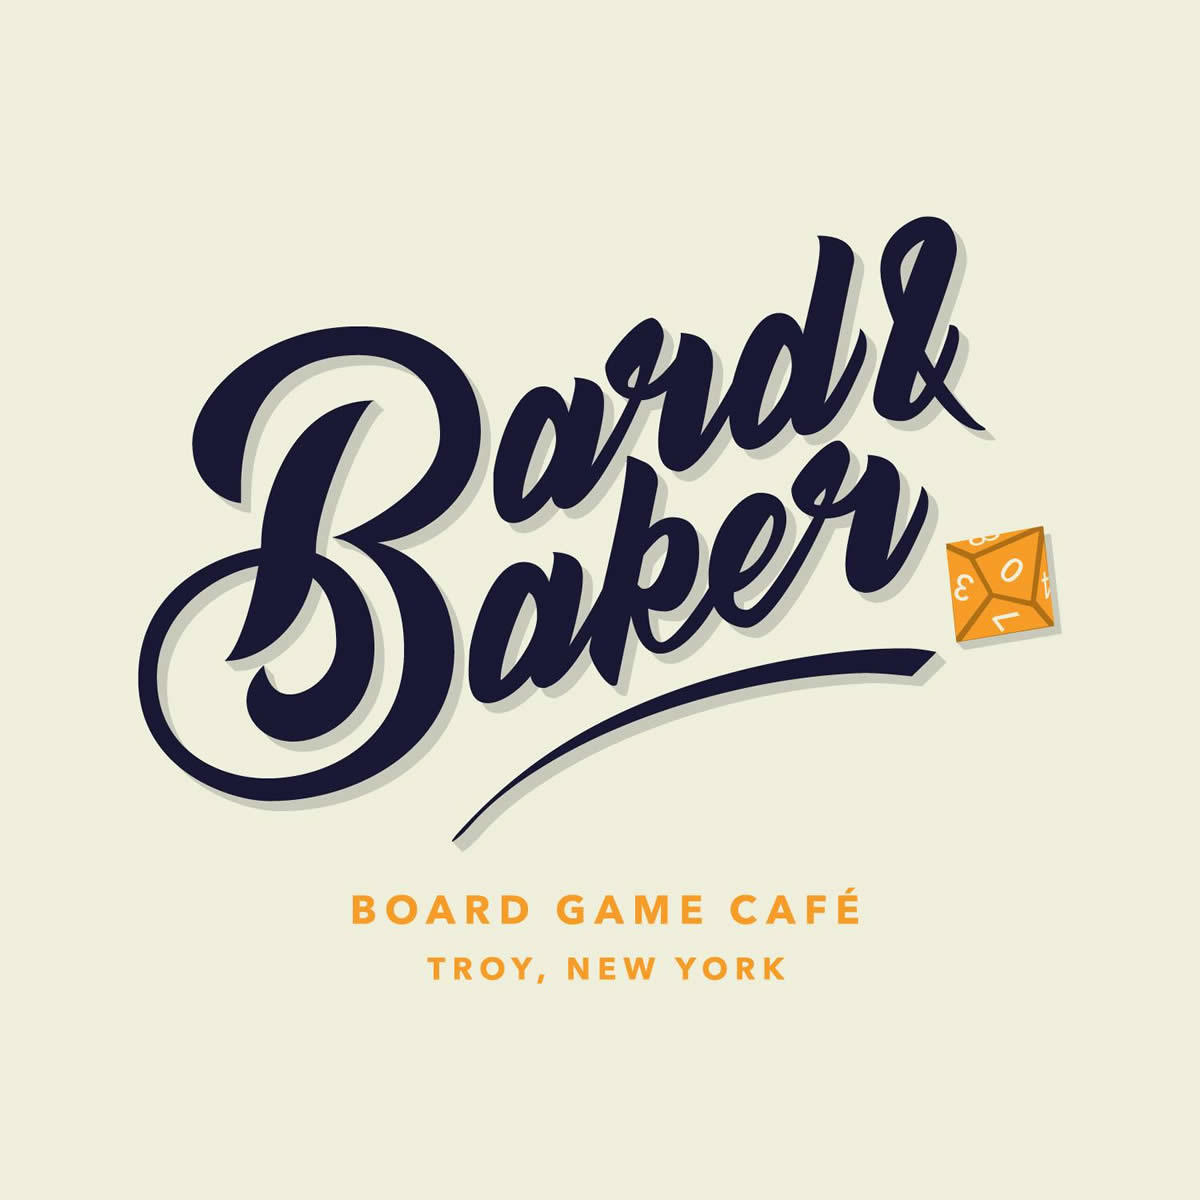 Bard and Baker logo